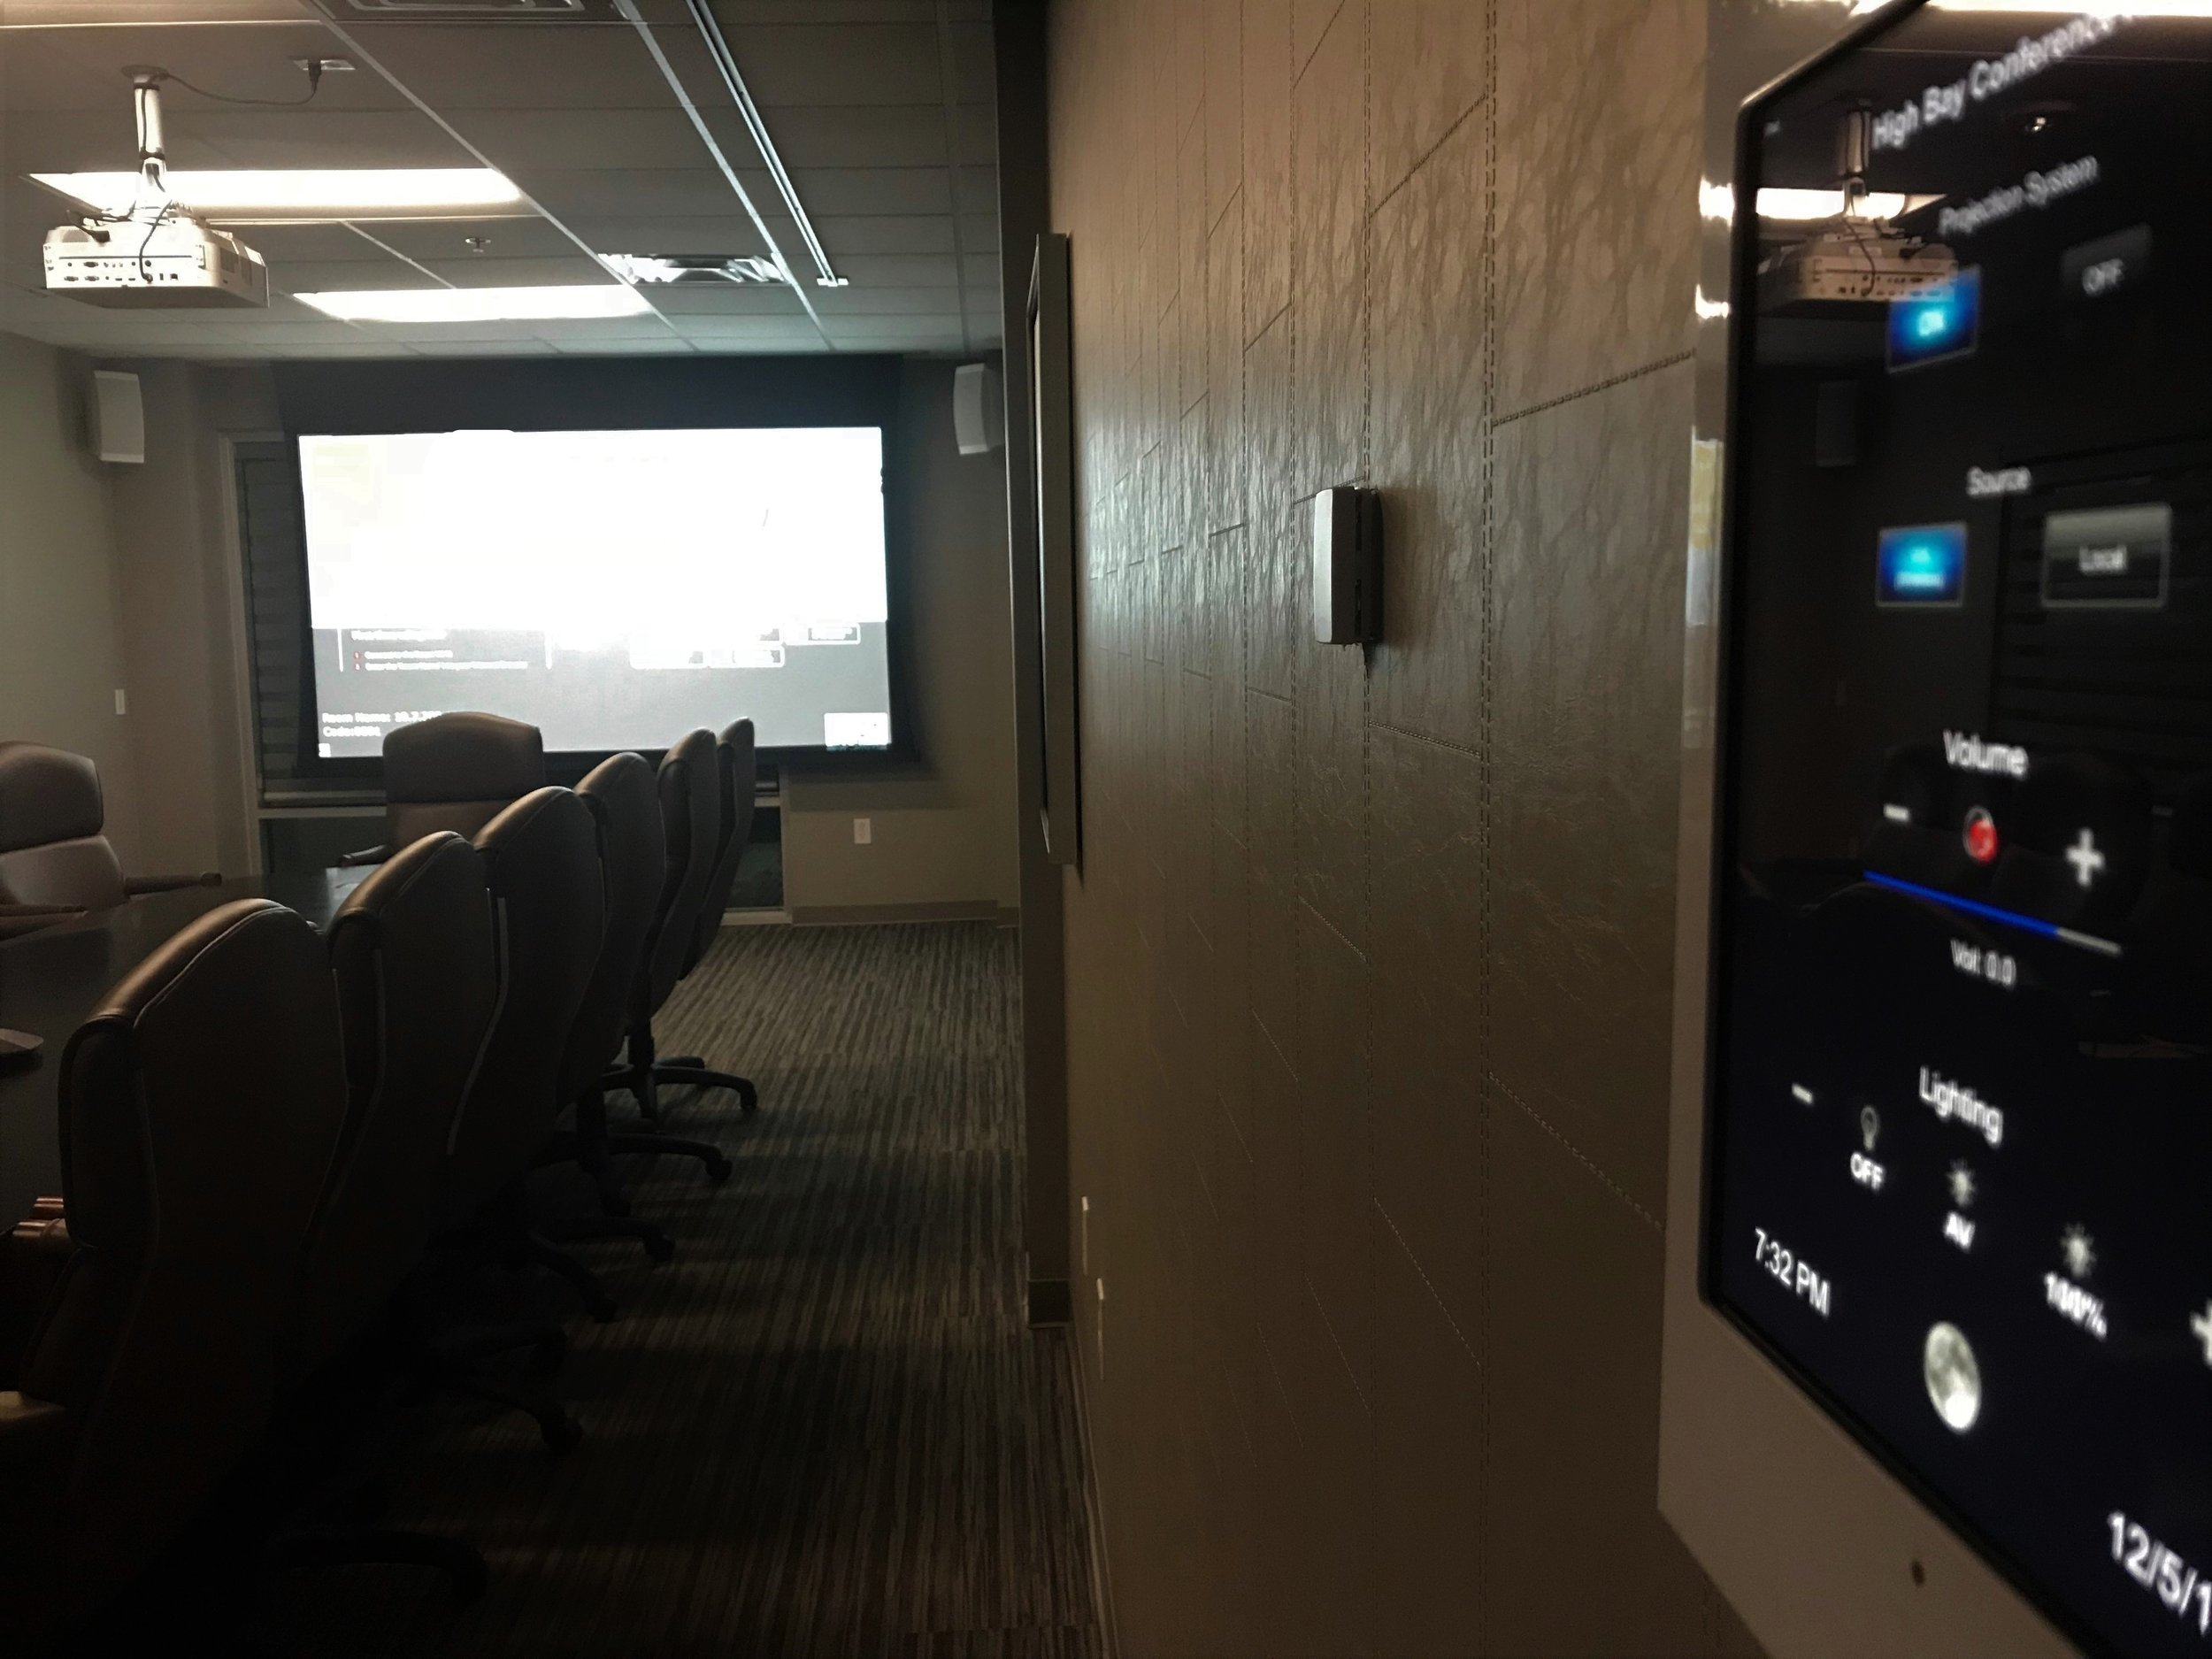 Integrated Meeting Room Control System  - Simplify control of your meeting spaces (Client - Louisville, KY)